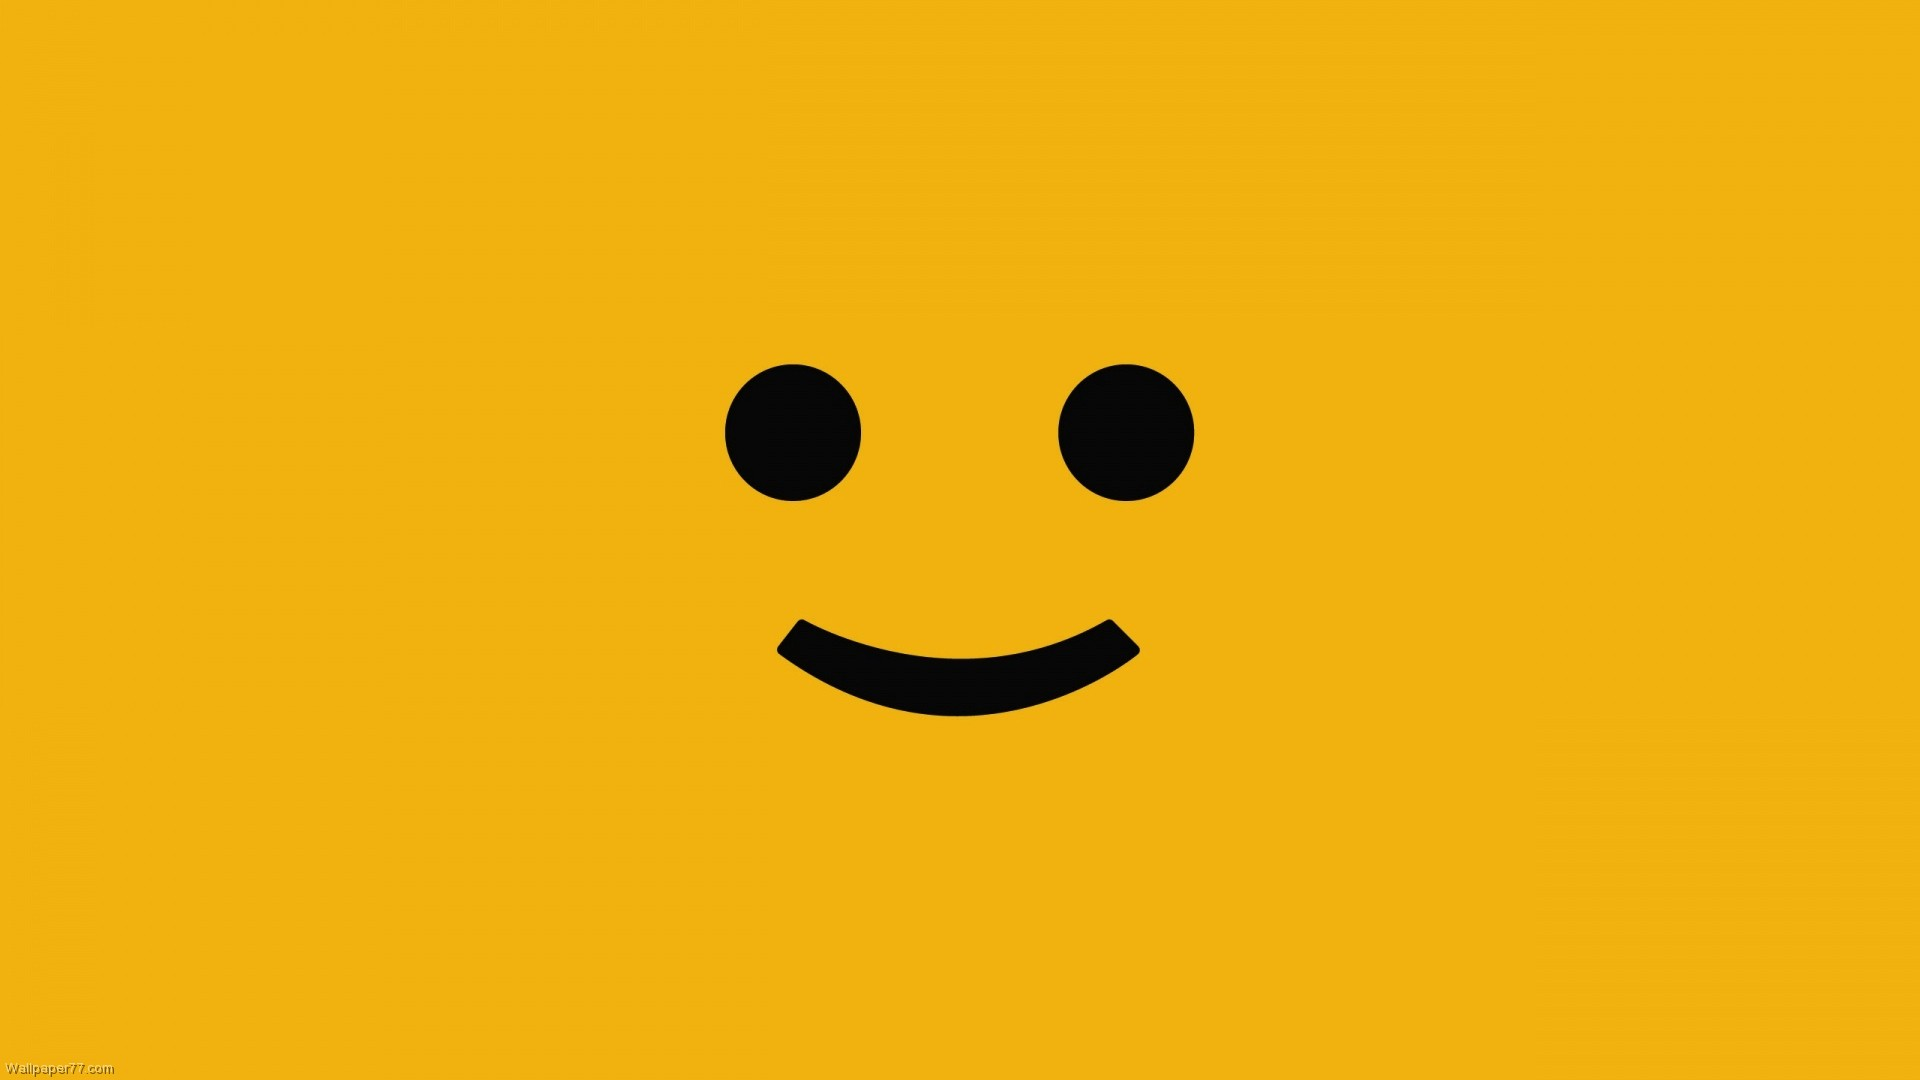 smiley face background cute fun wallpapers funny wallpapers 1920x1080 1920x1080